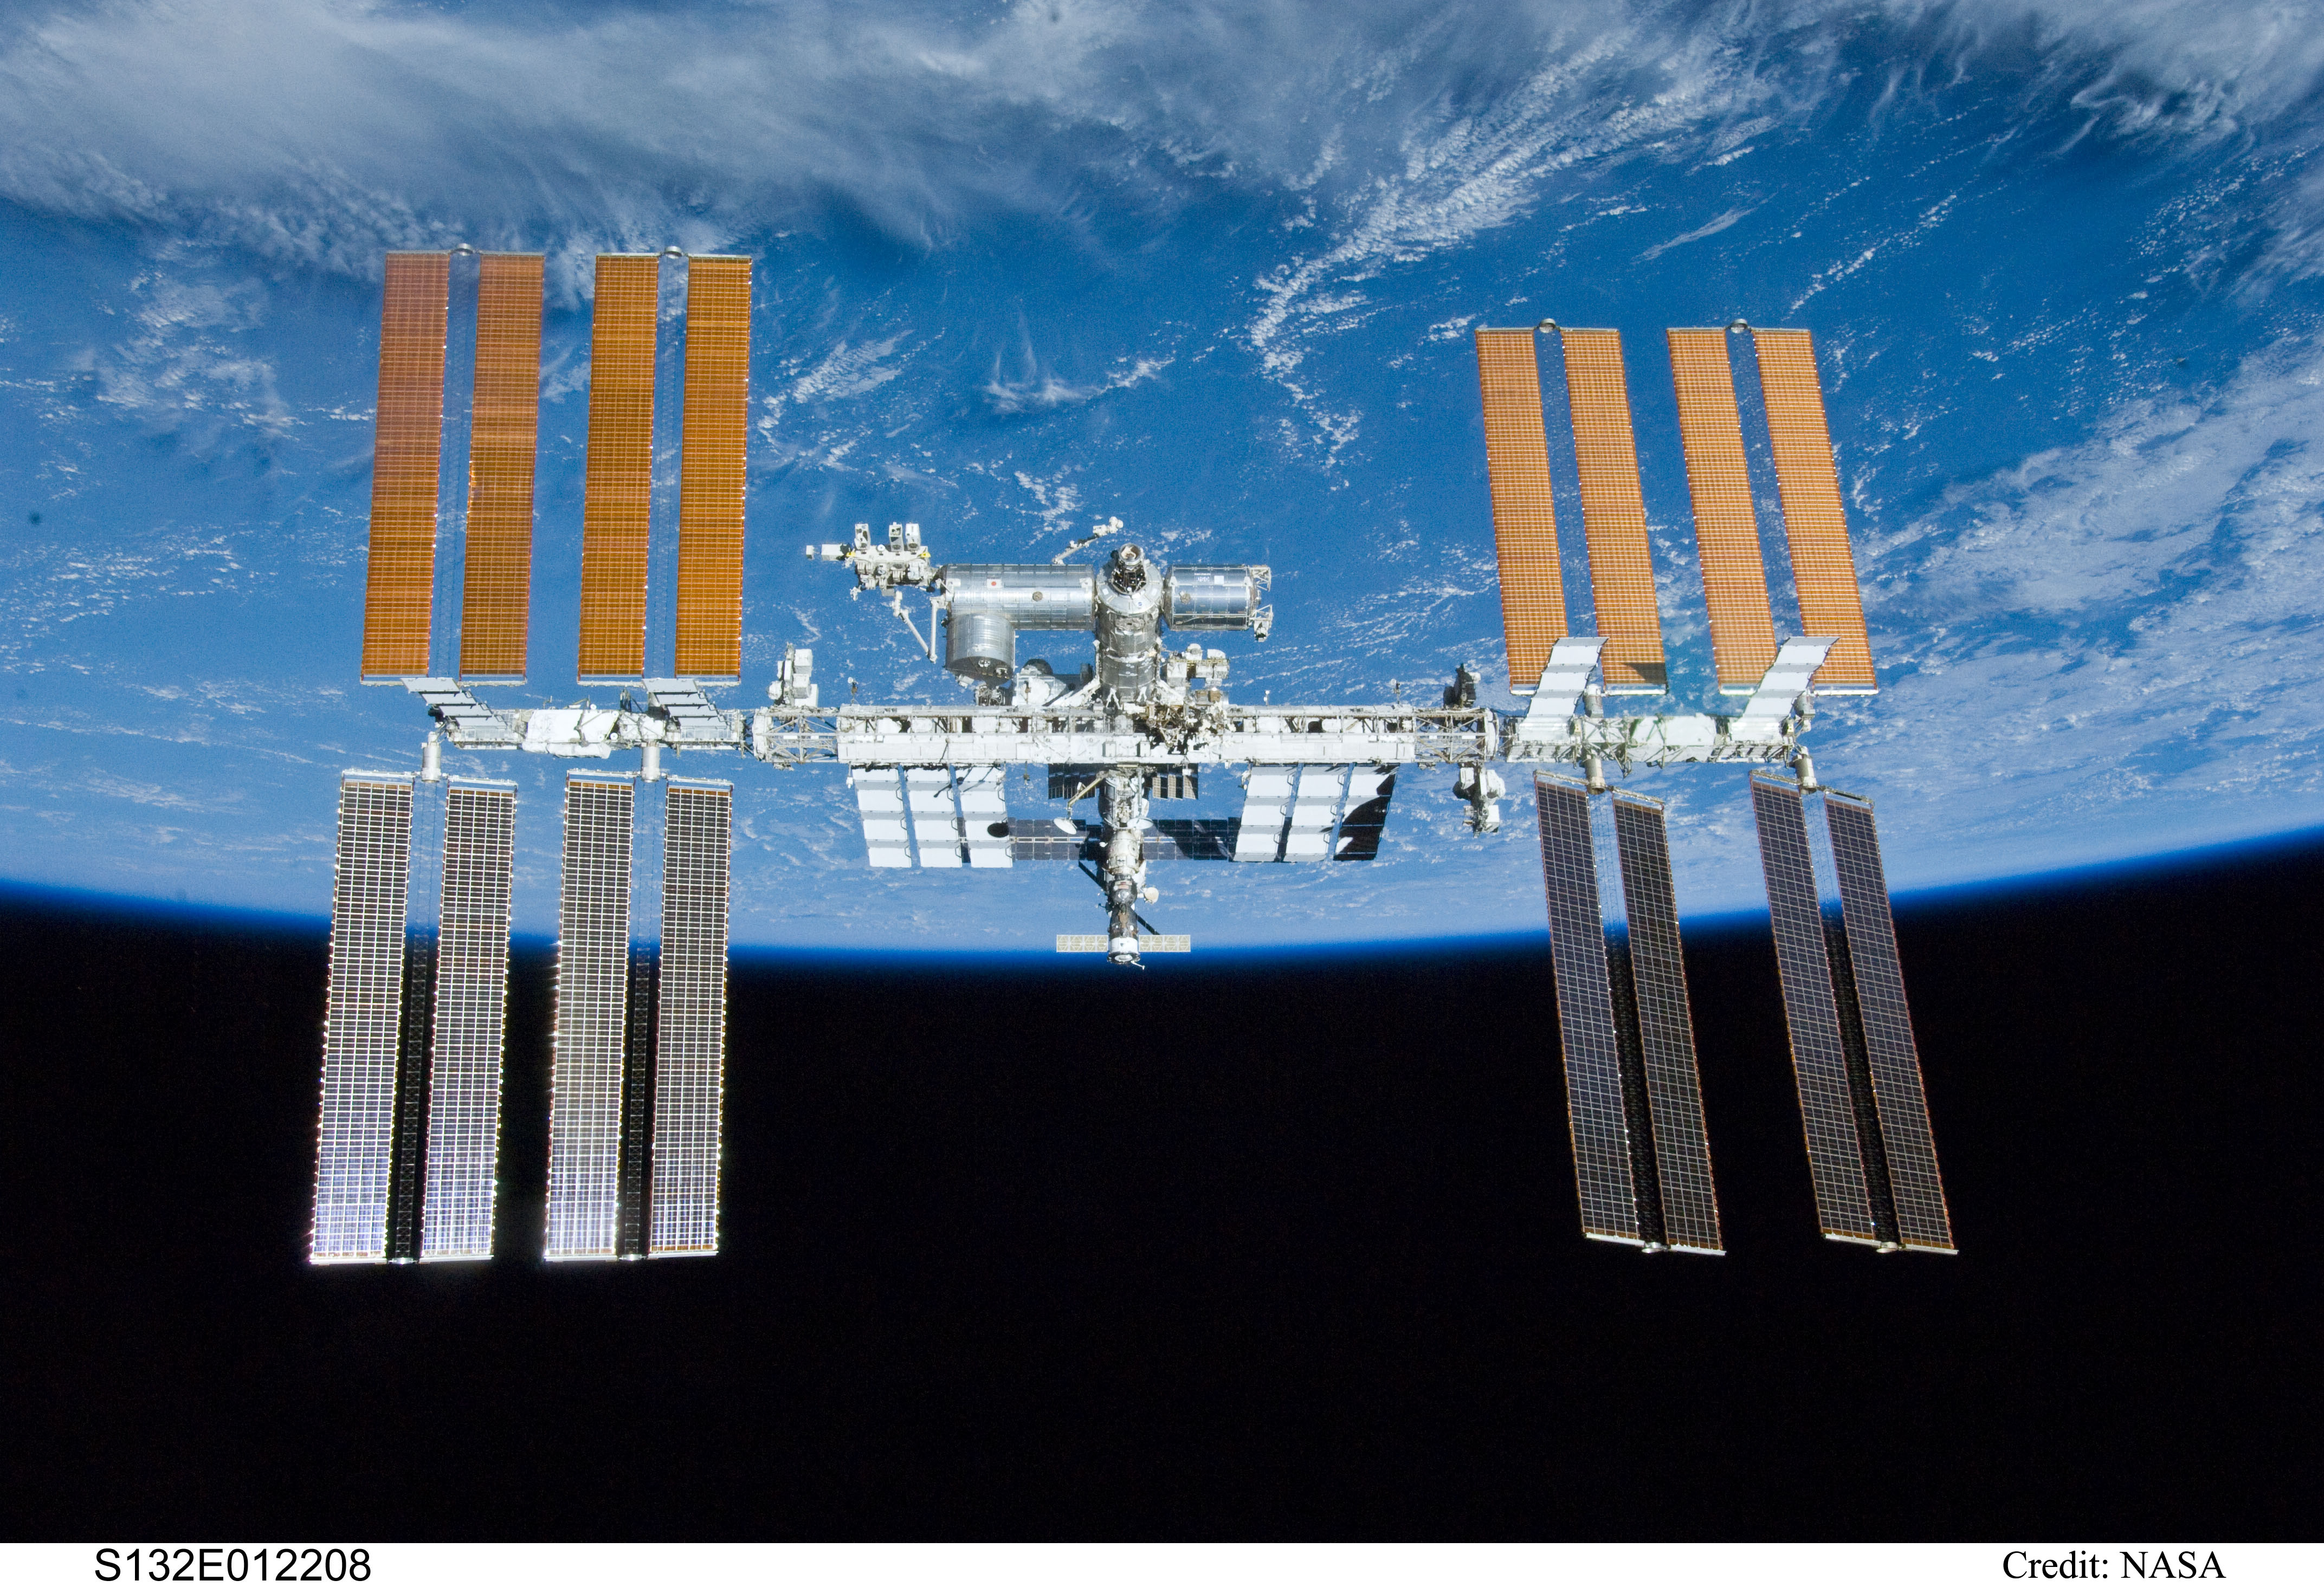 NASA Live-Streaming Amazing HD Video of Earth From ISS